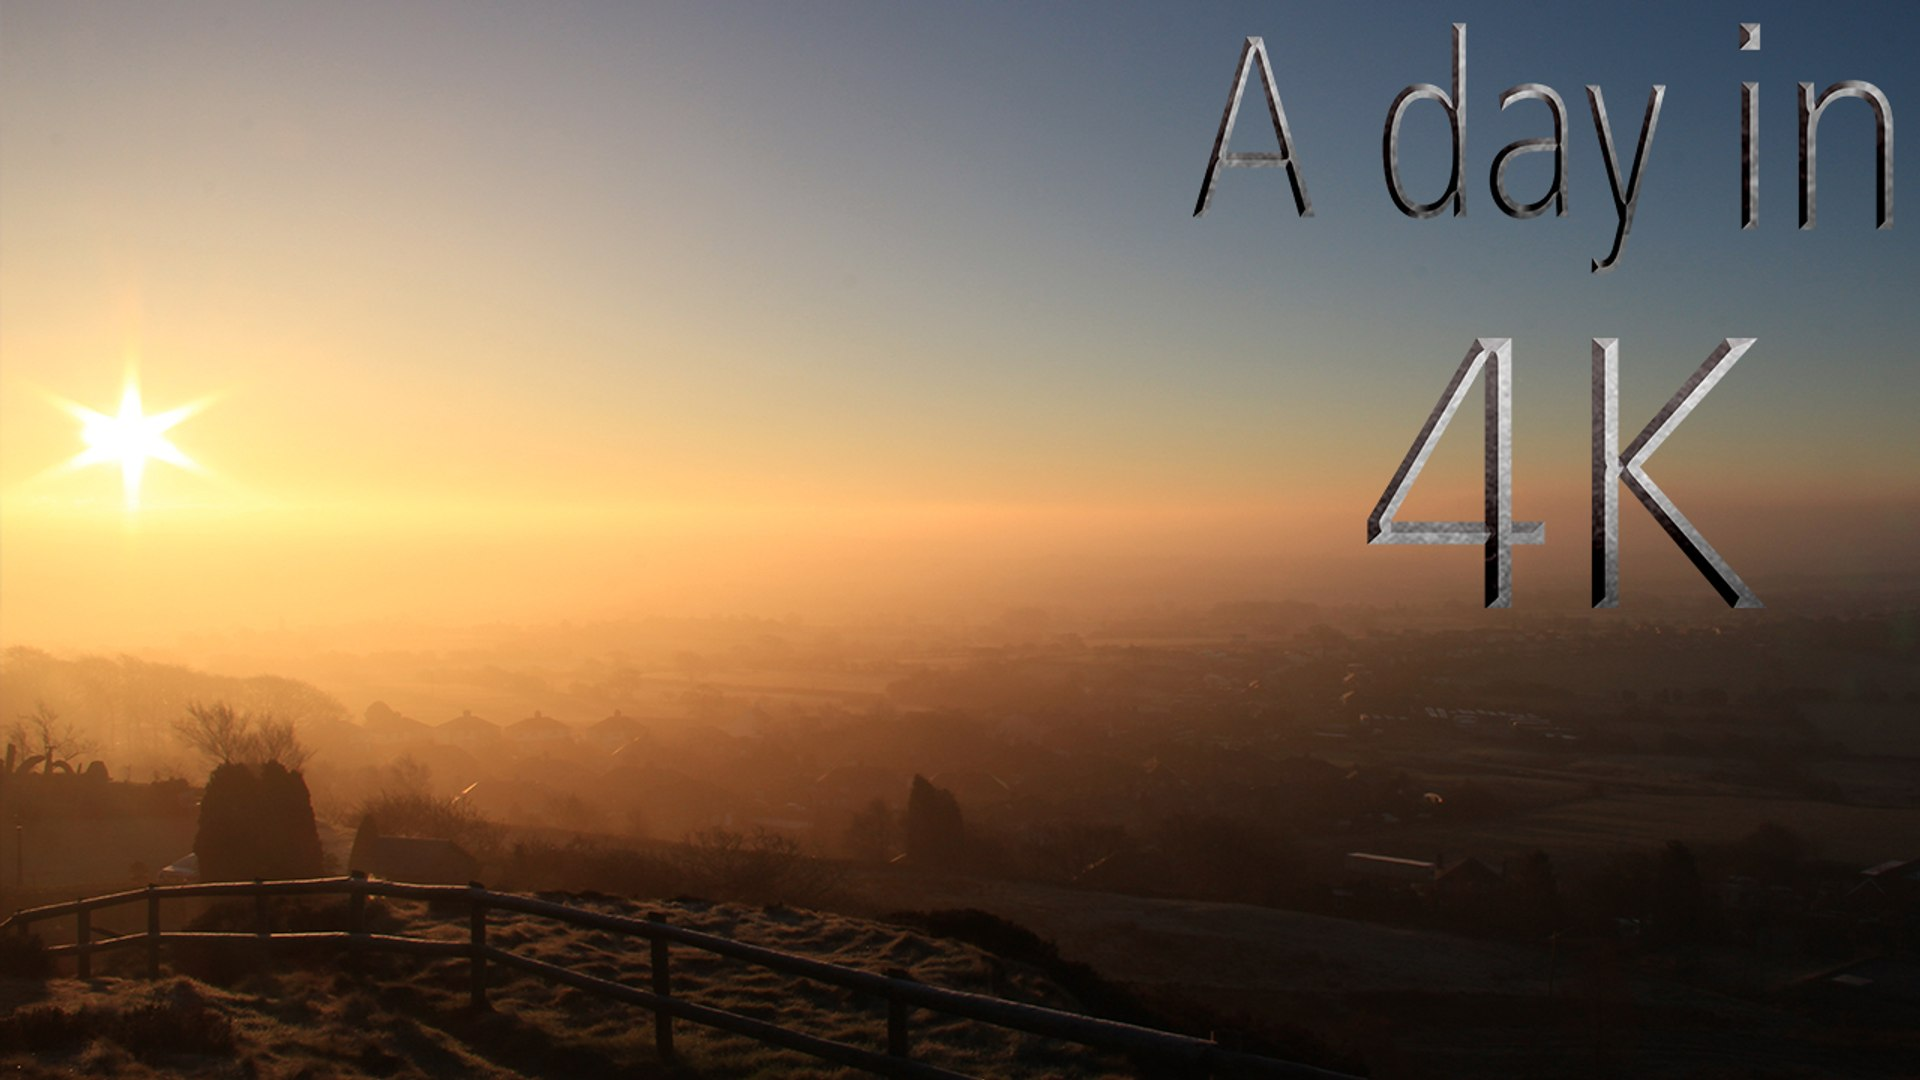 A day in 4K - free 4K stock footage